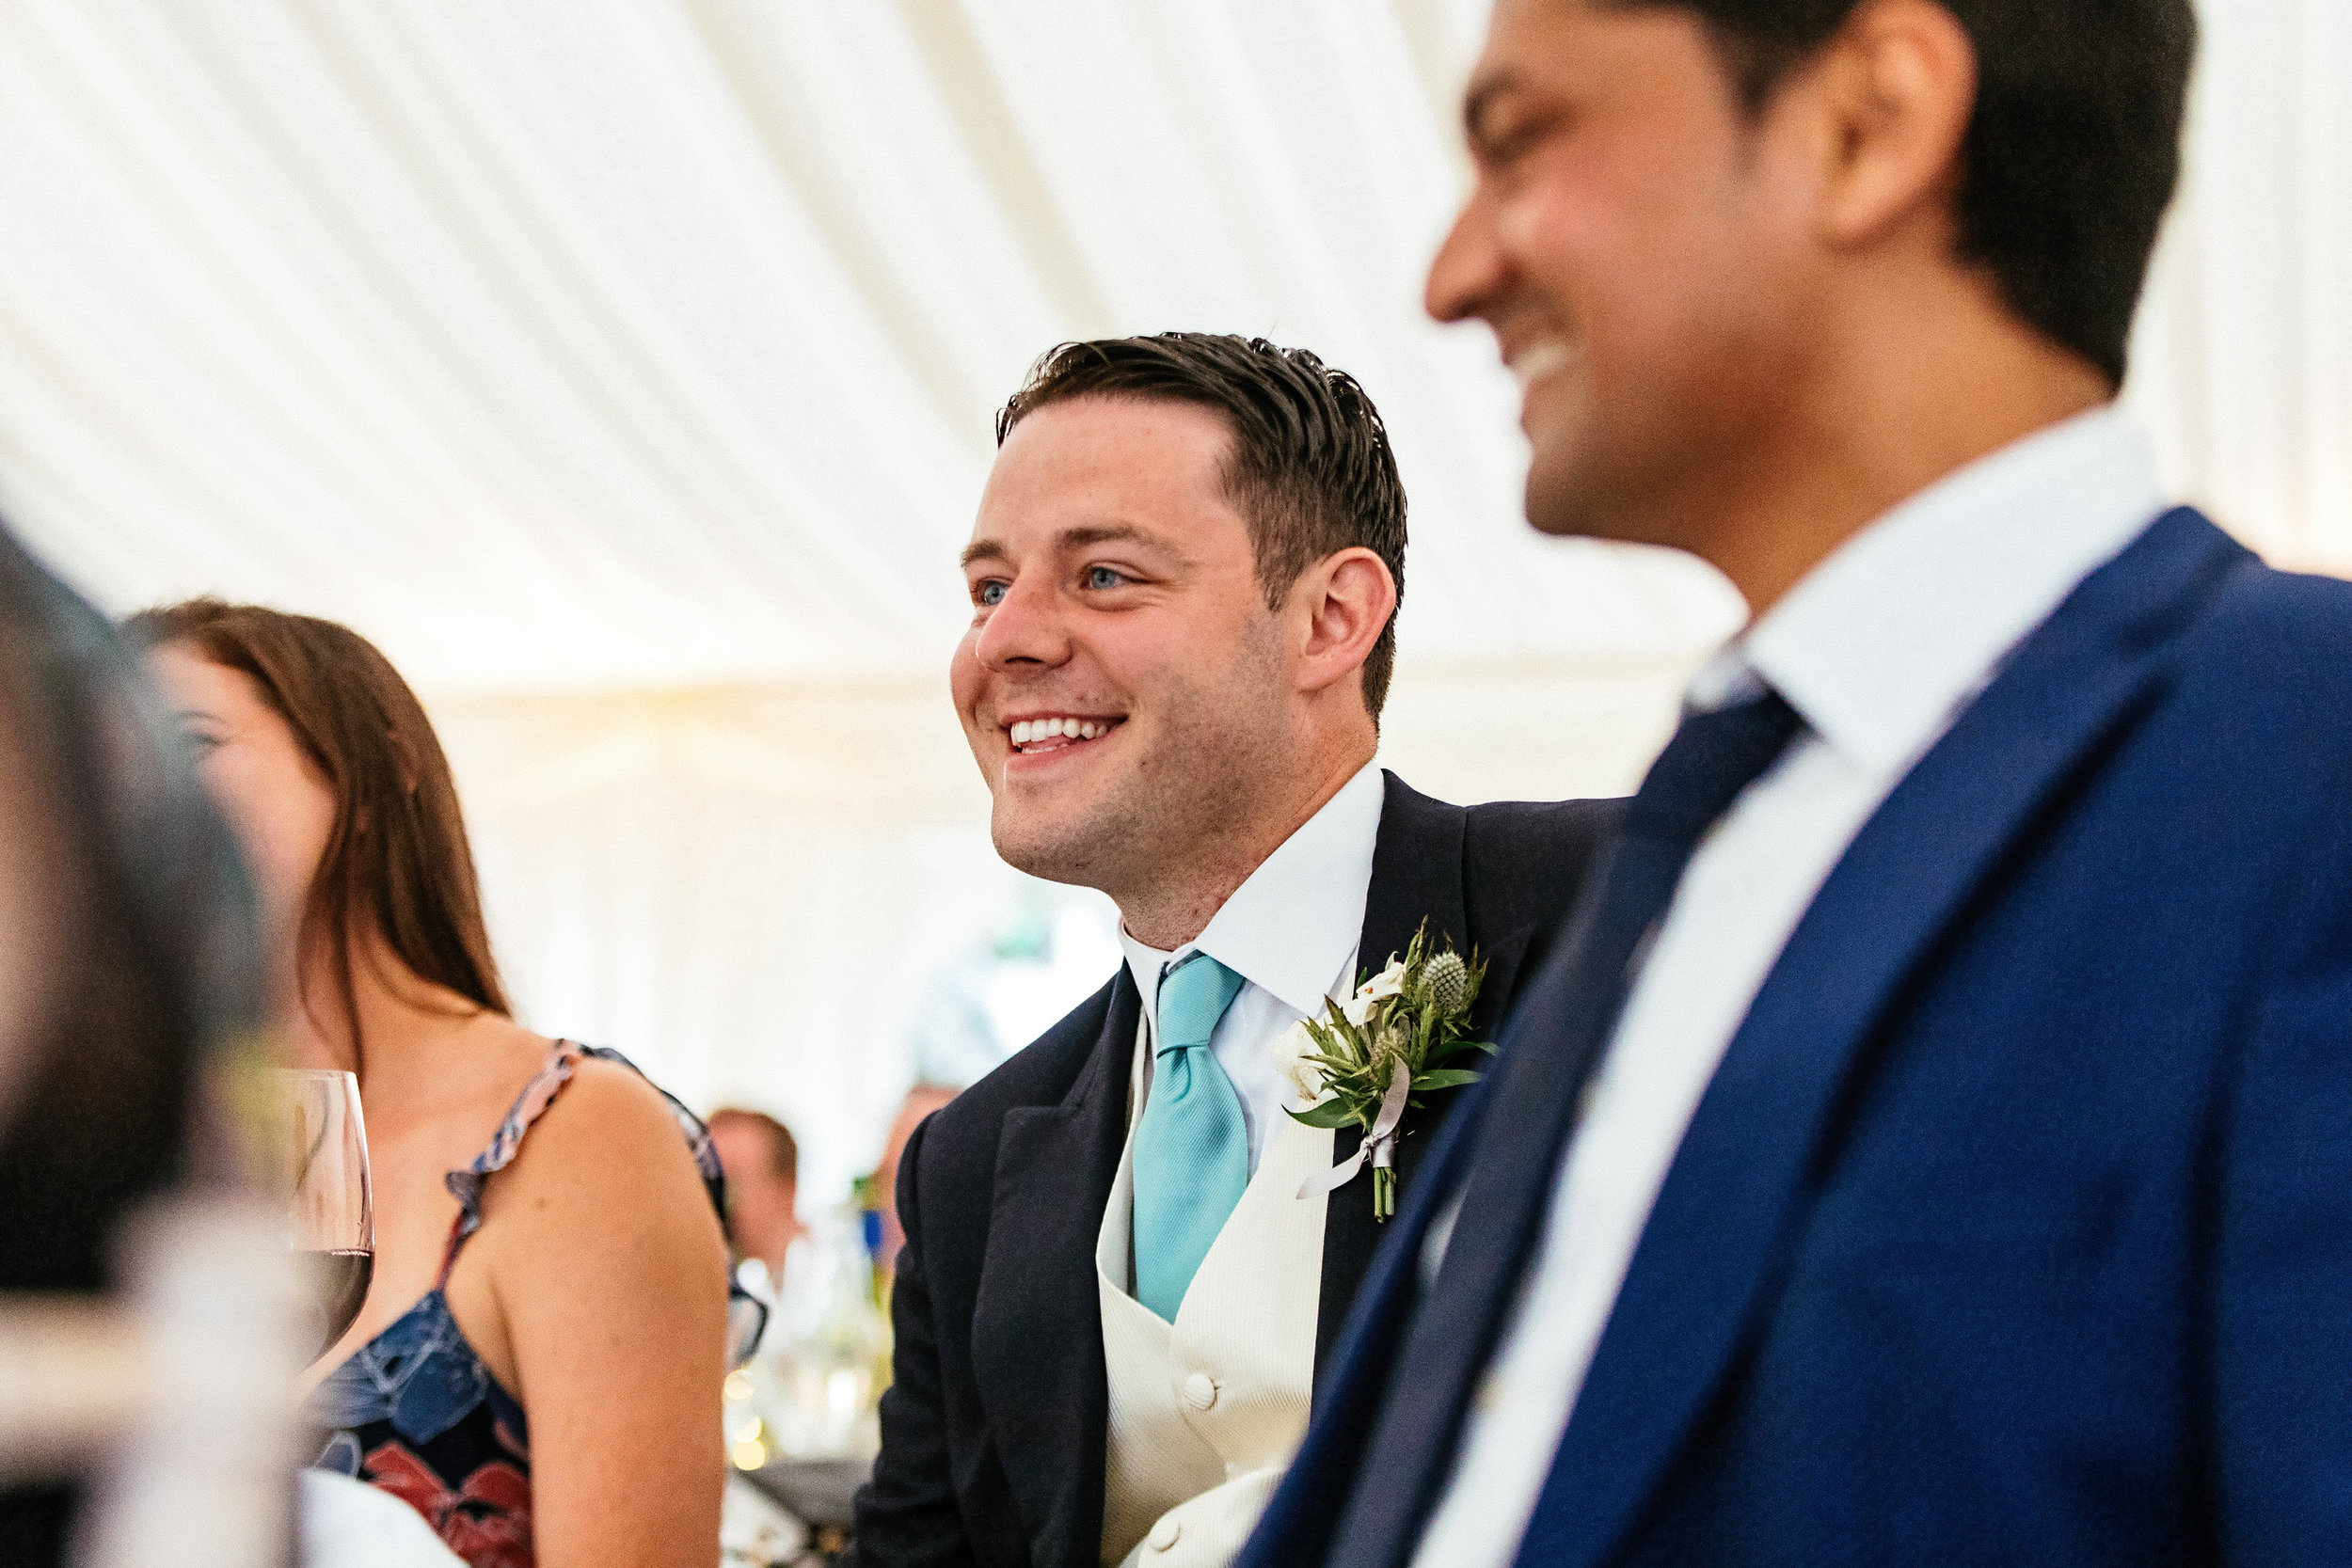 Biddenden Wedding Photographer 0140.jpg